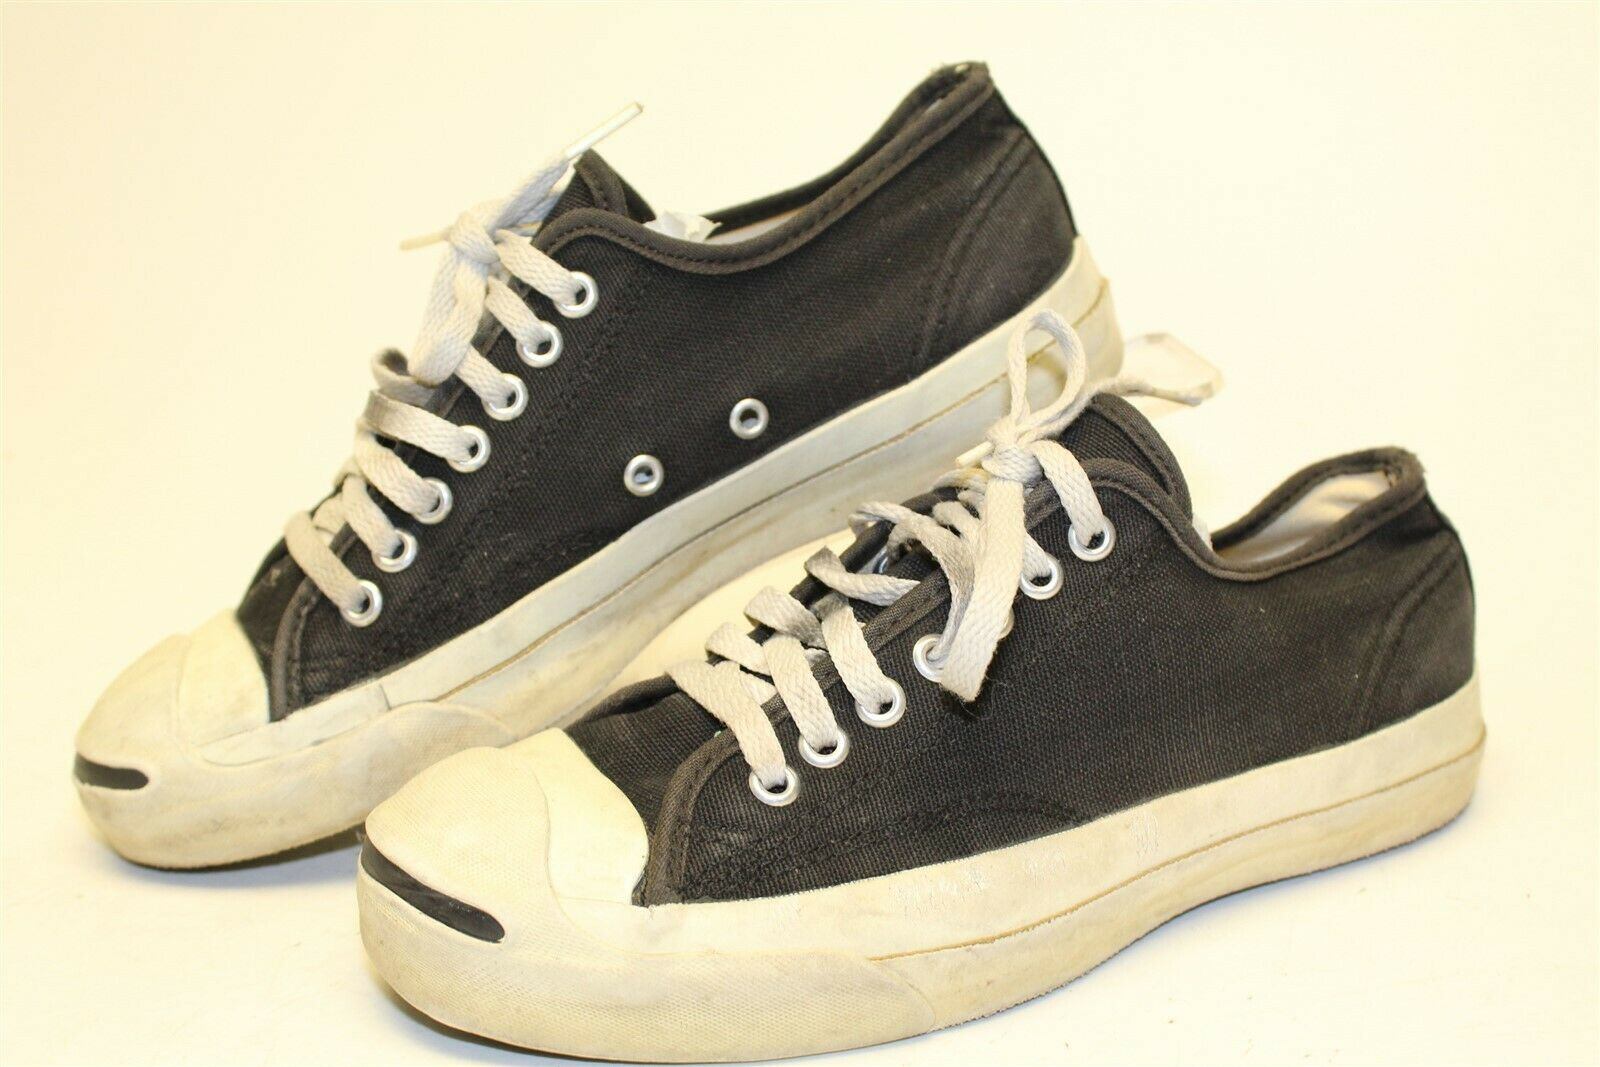 Converse Jack Purcell Vintage Mens 7 Lace Up Low Top Shoes Sneakers Made in USA